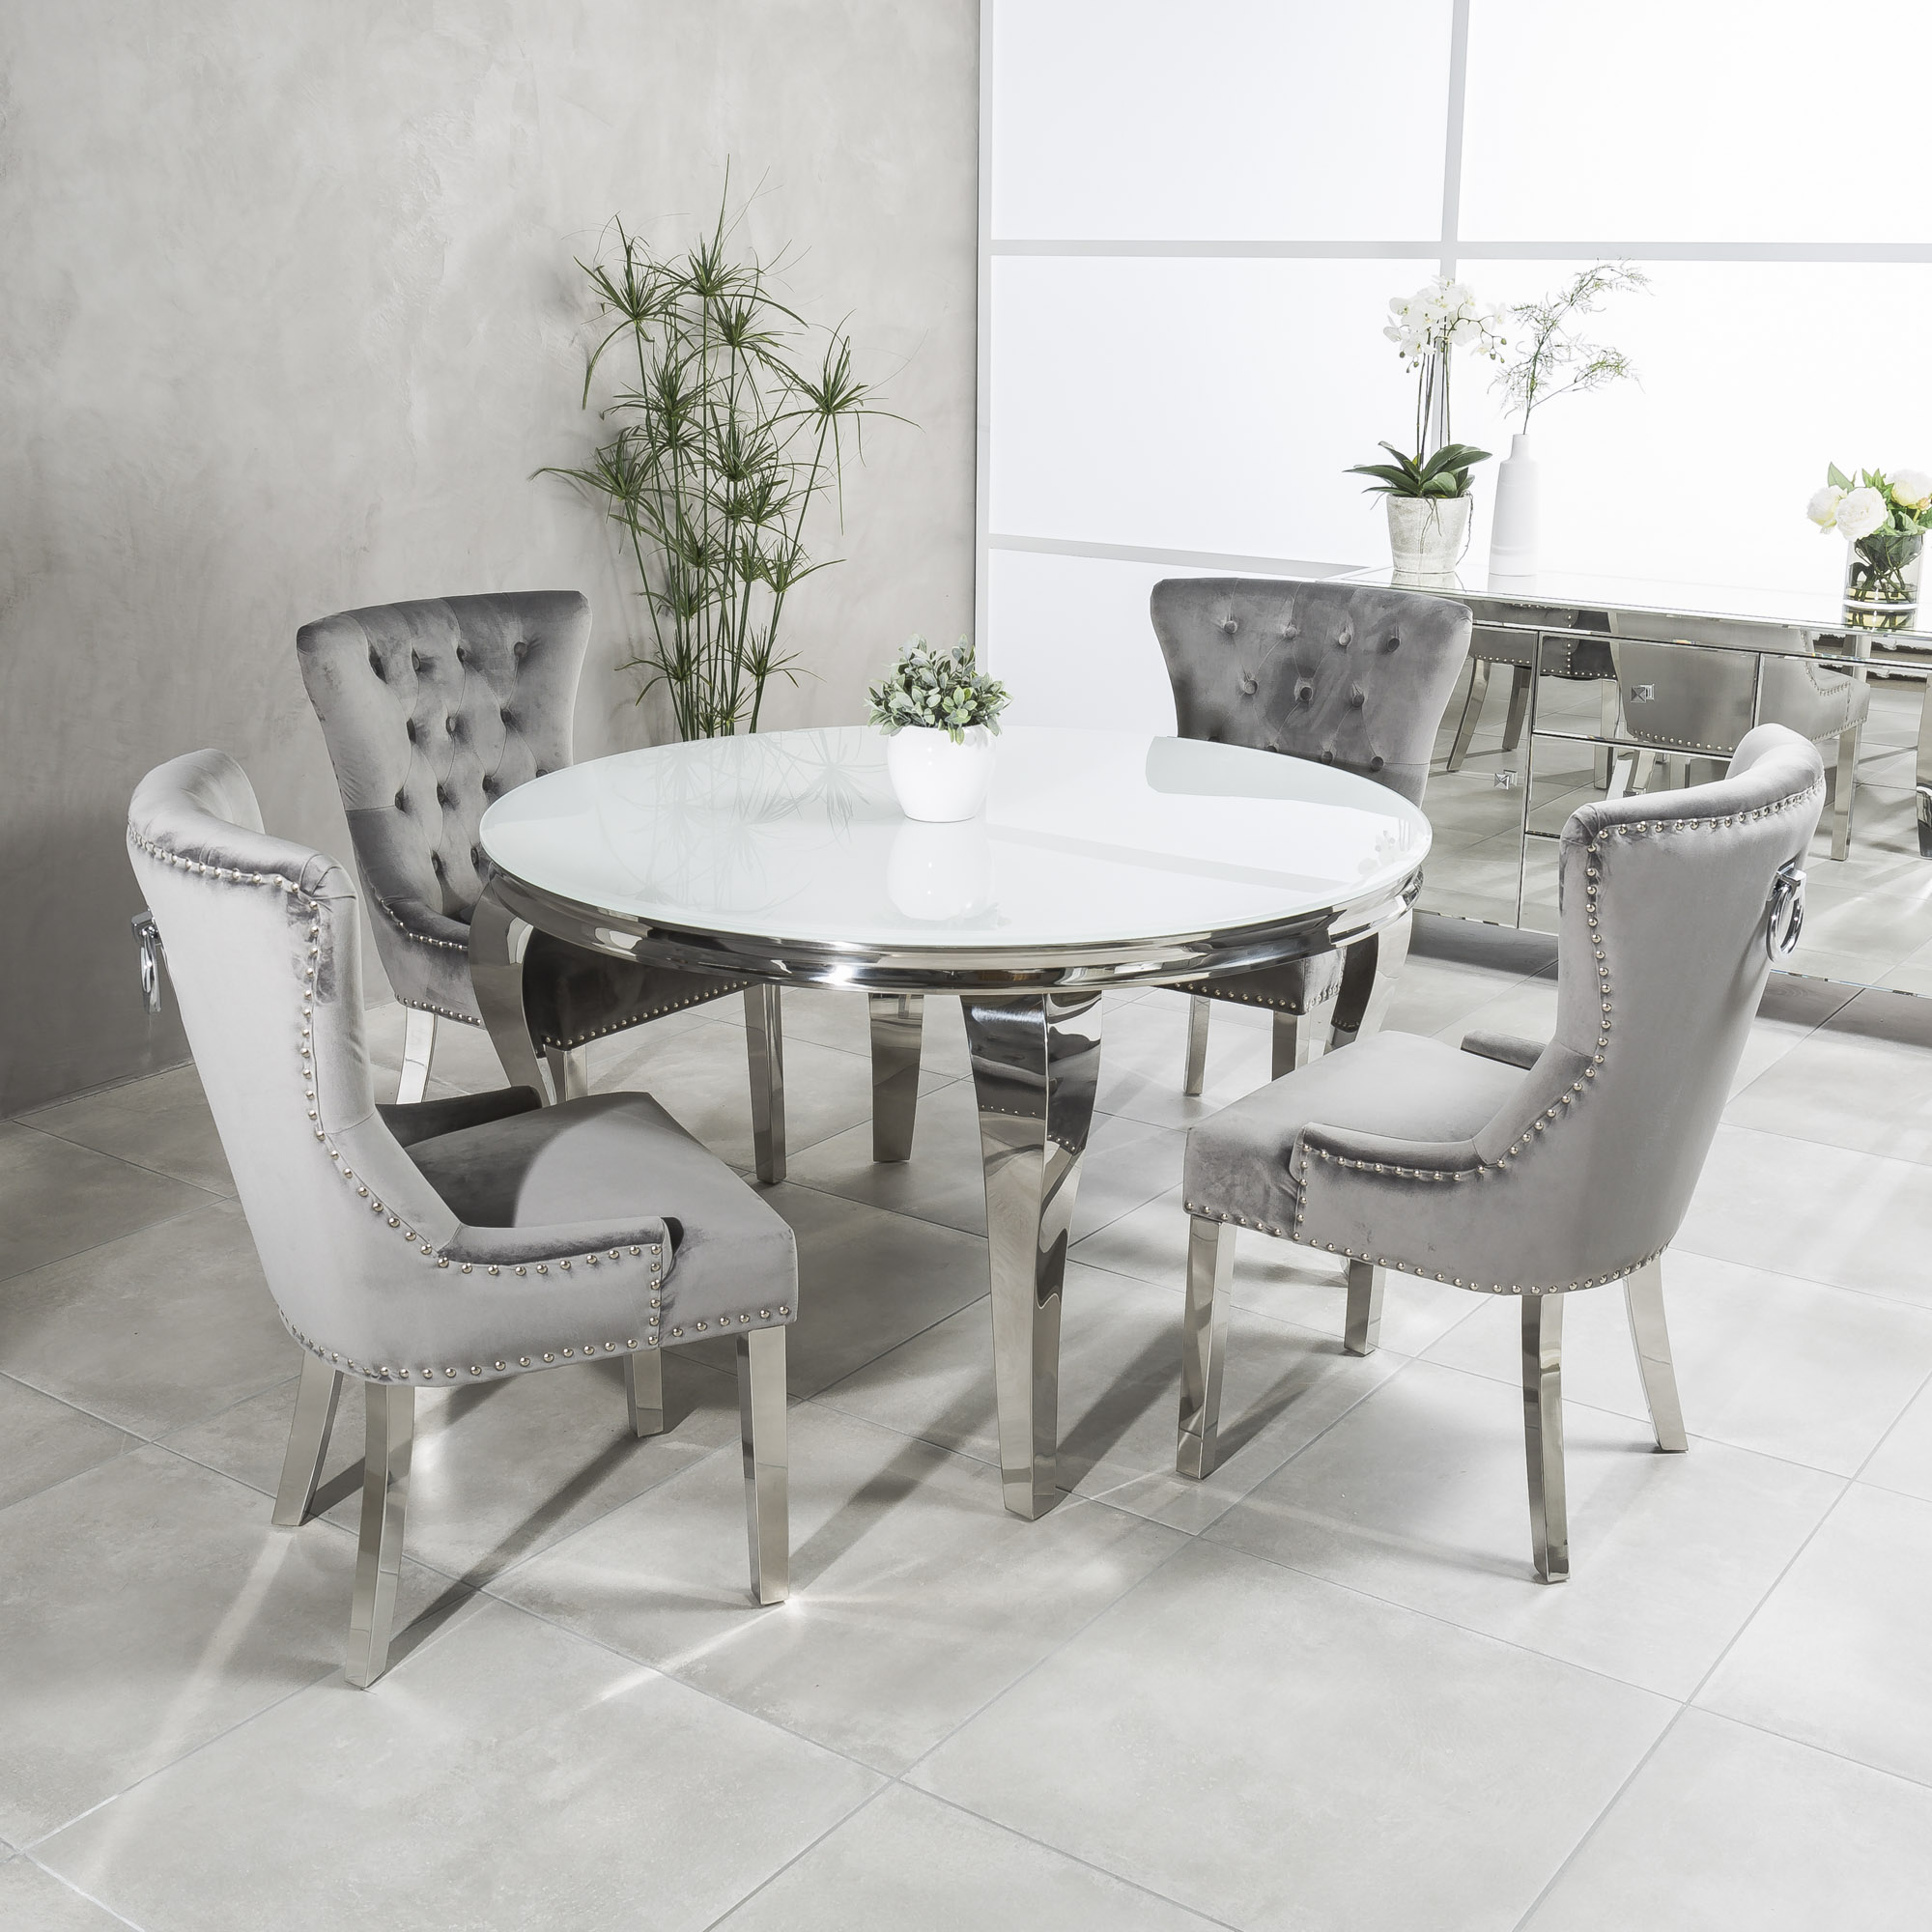 1.3m Louis Round Steel & White Glass Dining Table Set x 4 Grey Dining Chairs